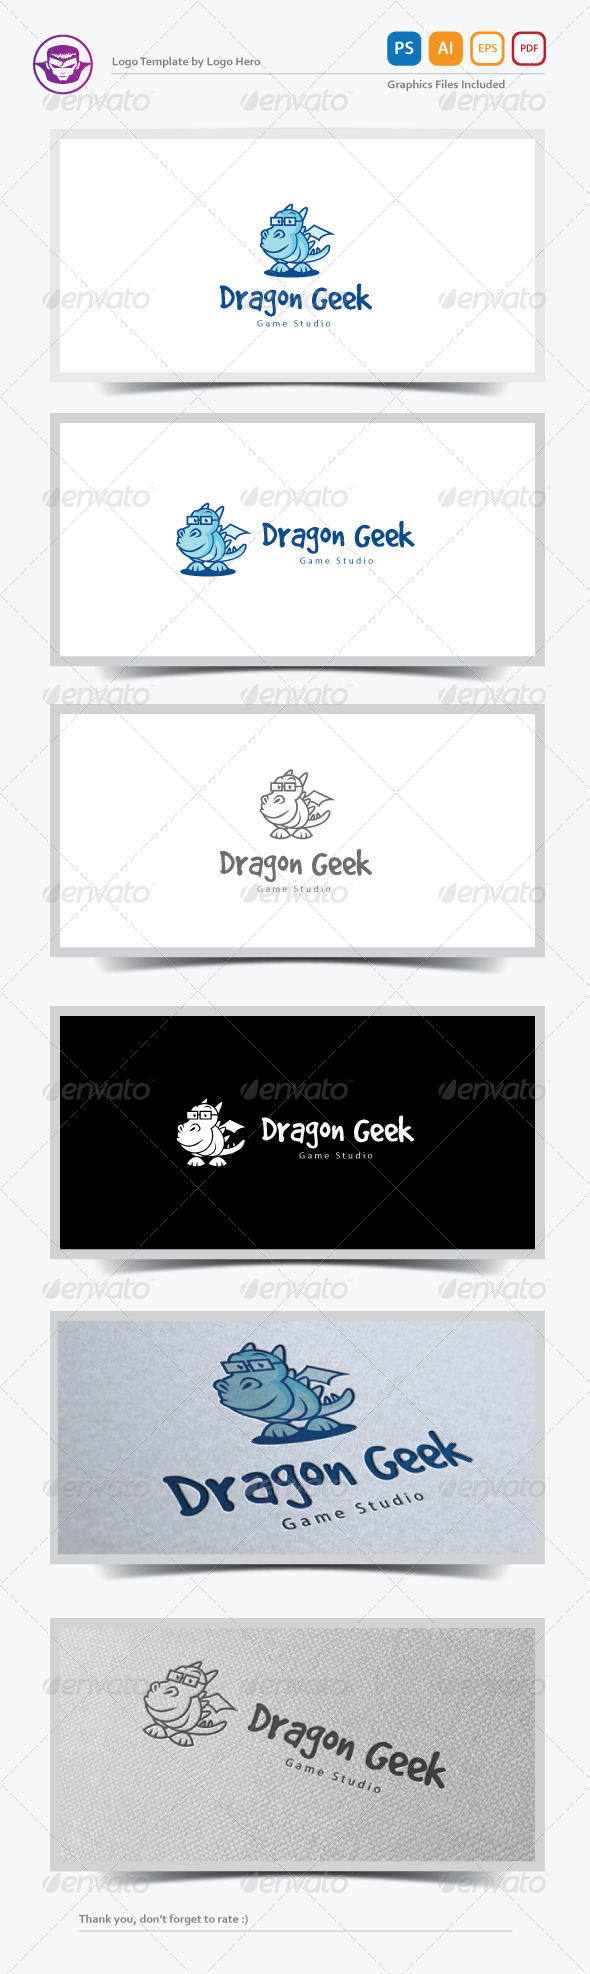 GraphicRiver Dragon Geek Logo Template 7639925